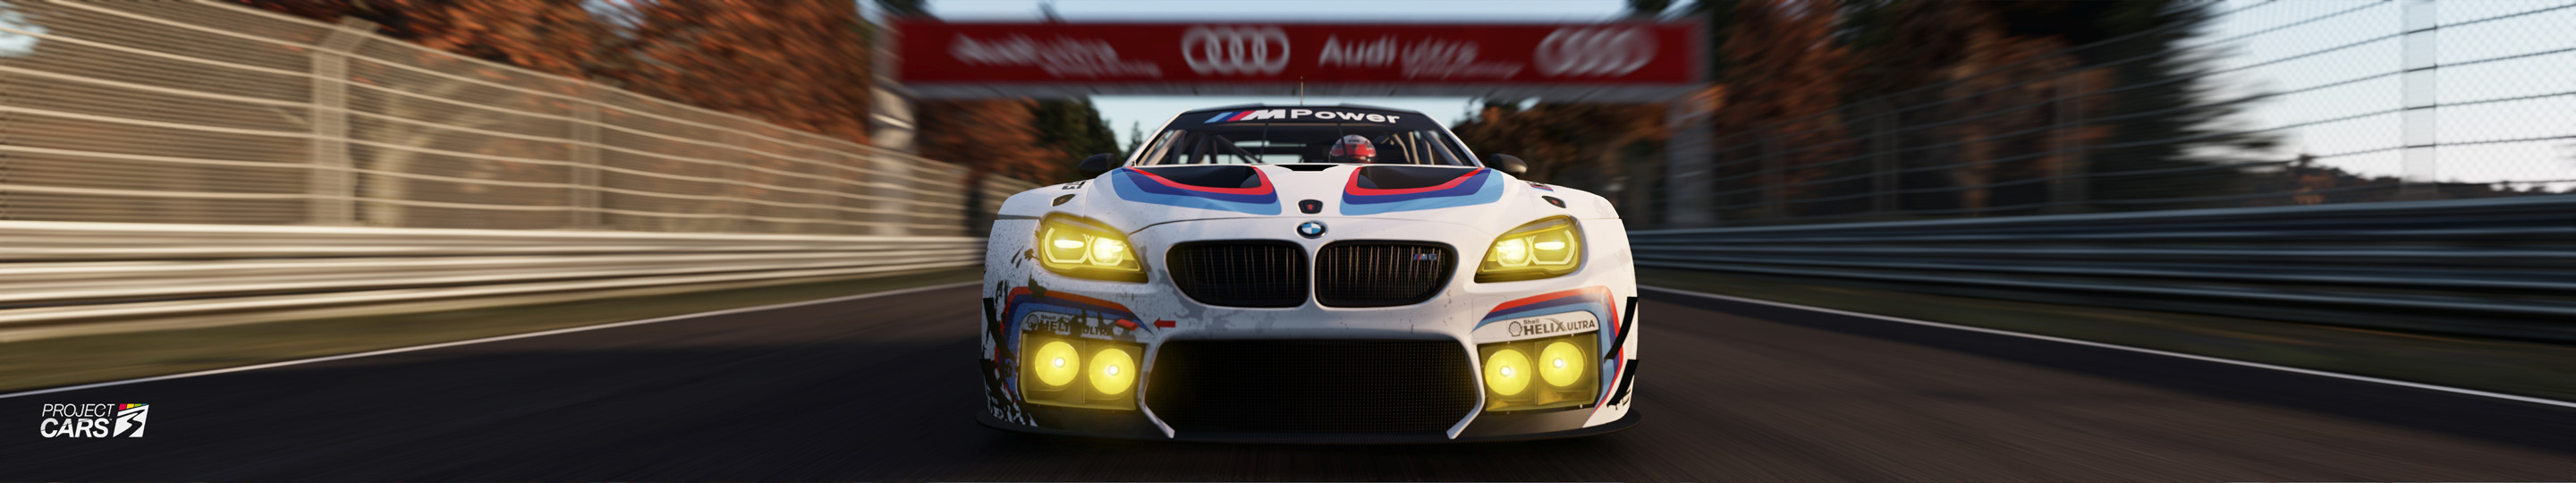 2 PROJECT CARS 3 BMW GT3 on NORDS copy.jpg